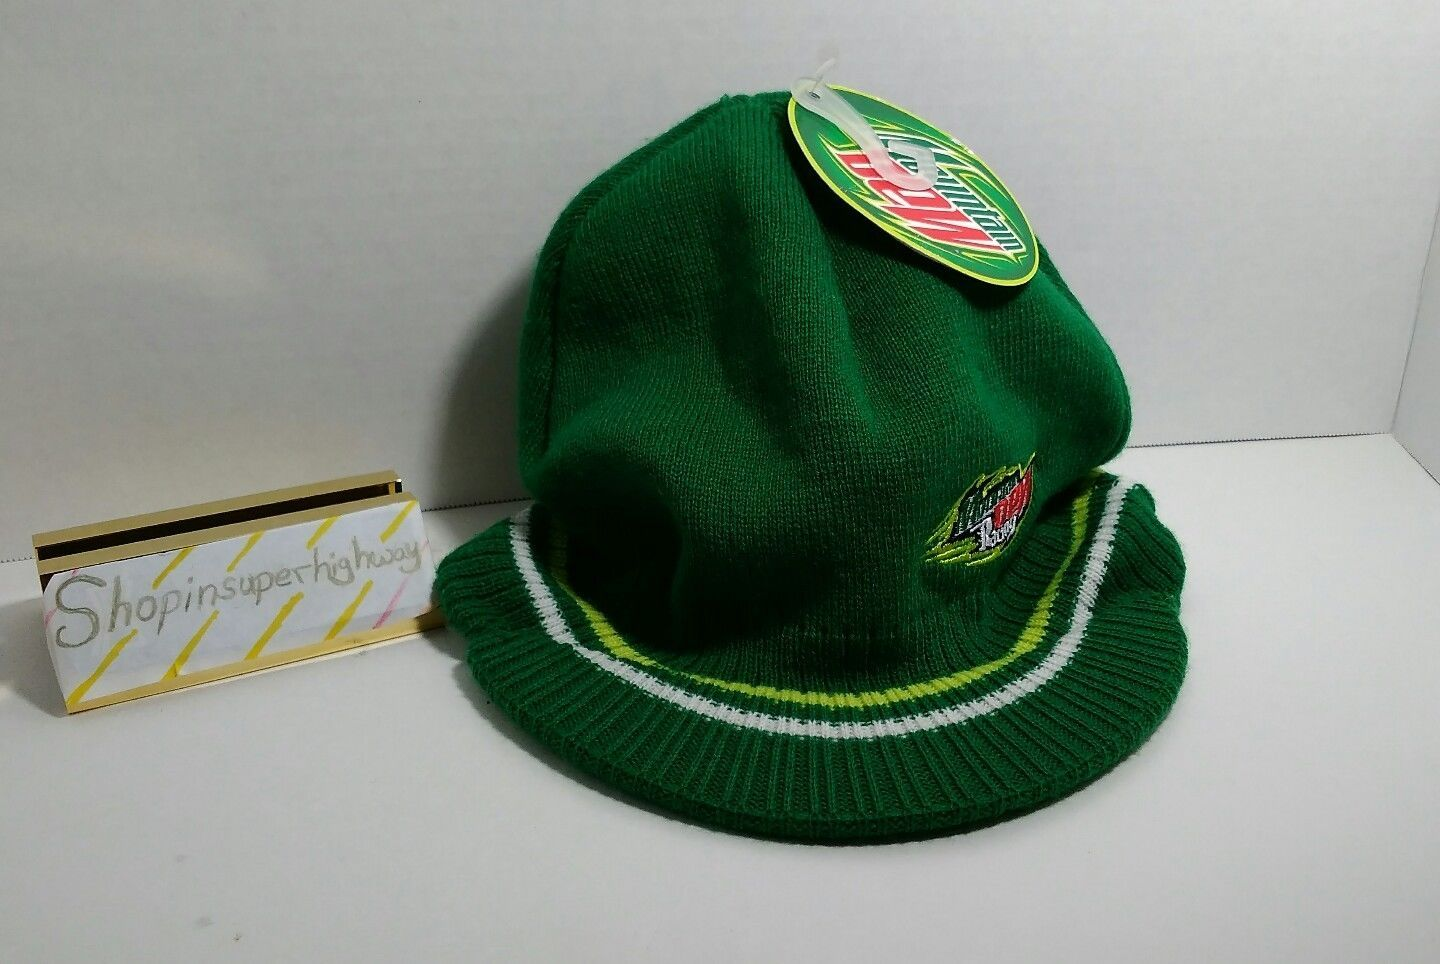 Green Mountain Dew Racing Hat Acrylic NWT with rim Fits Small to Medium head